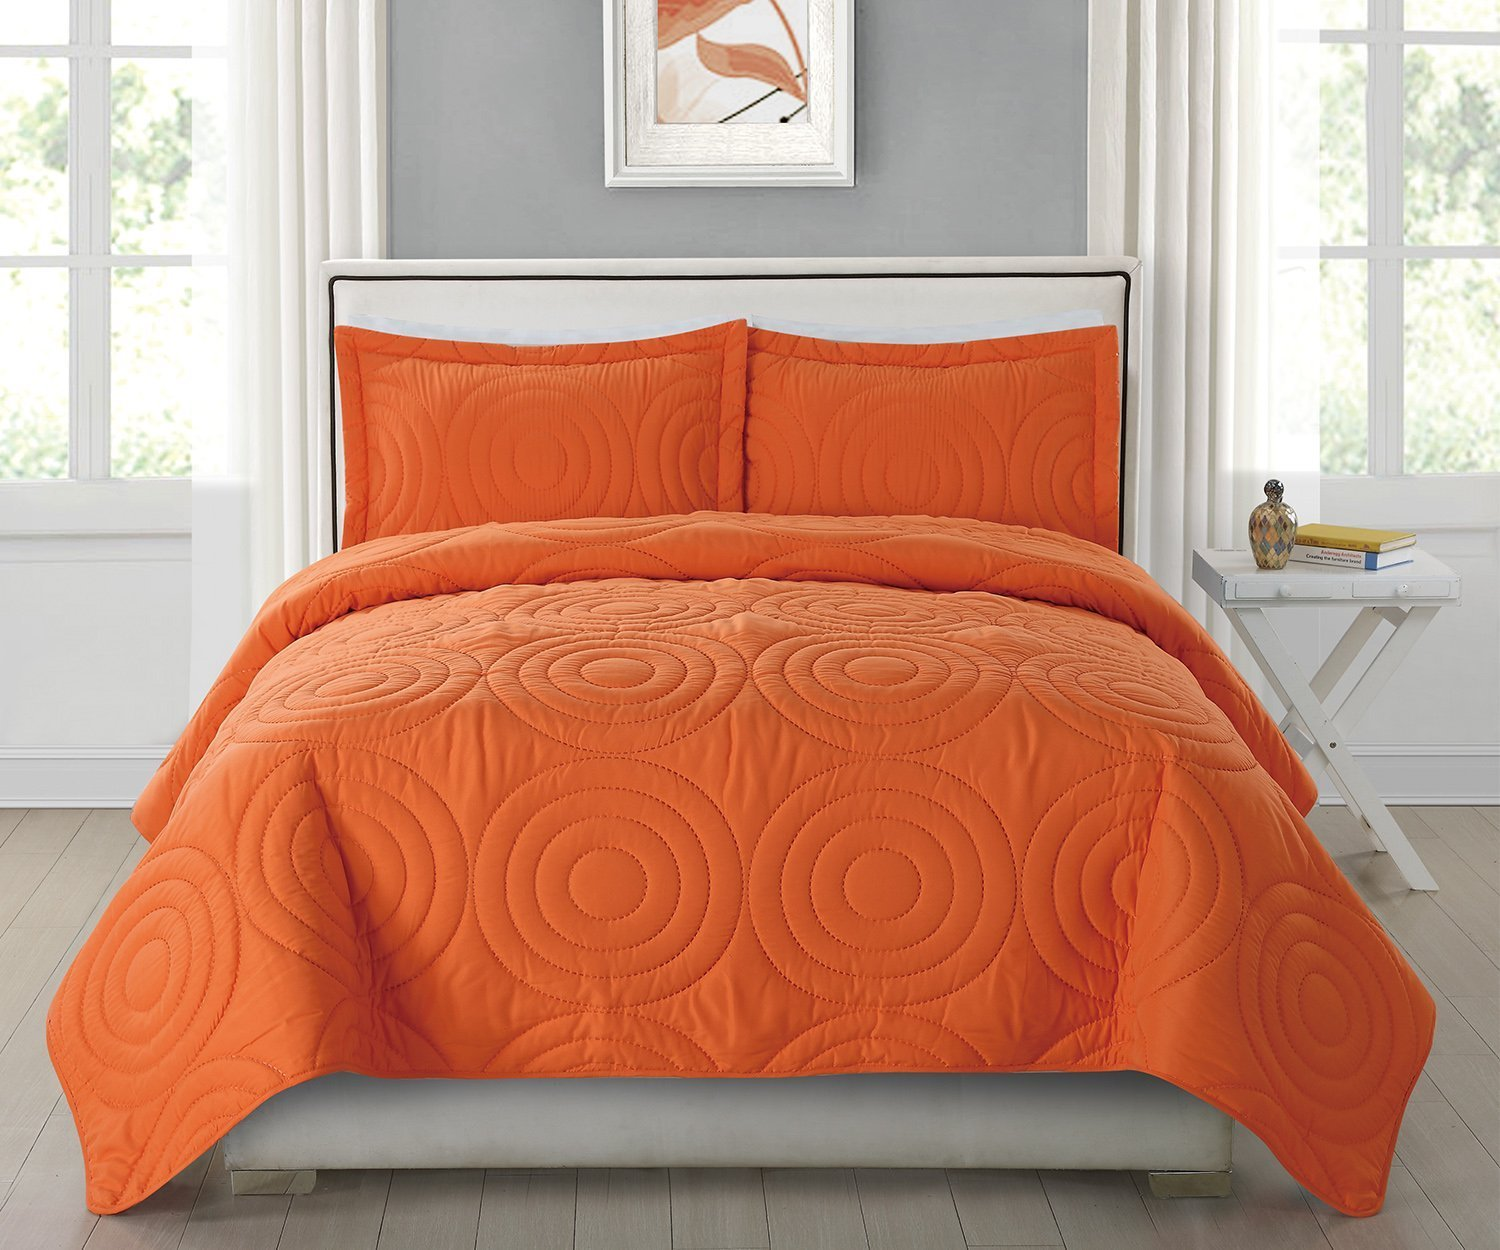 Orange And Peach Bedding Sets Sale Ease Bedding With Style